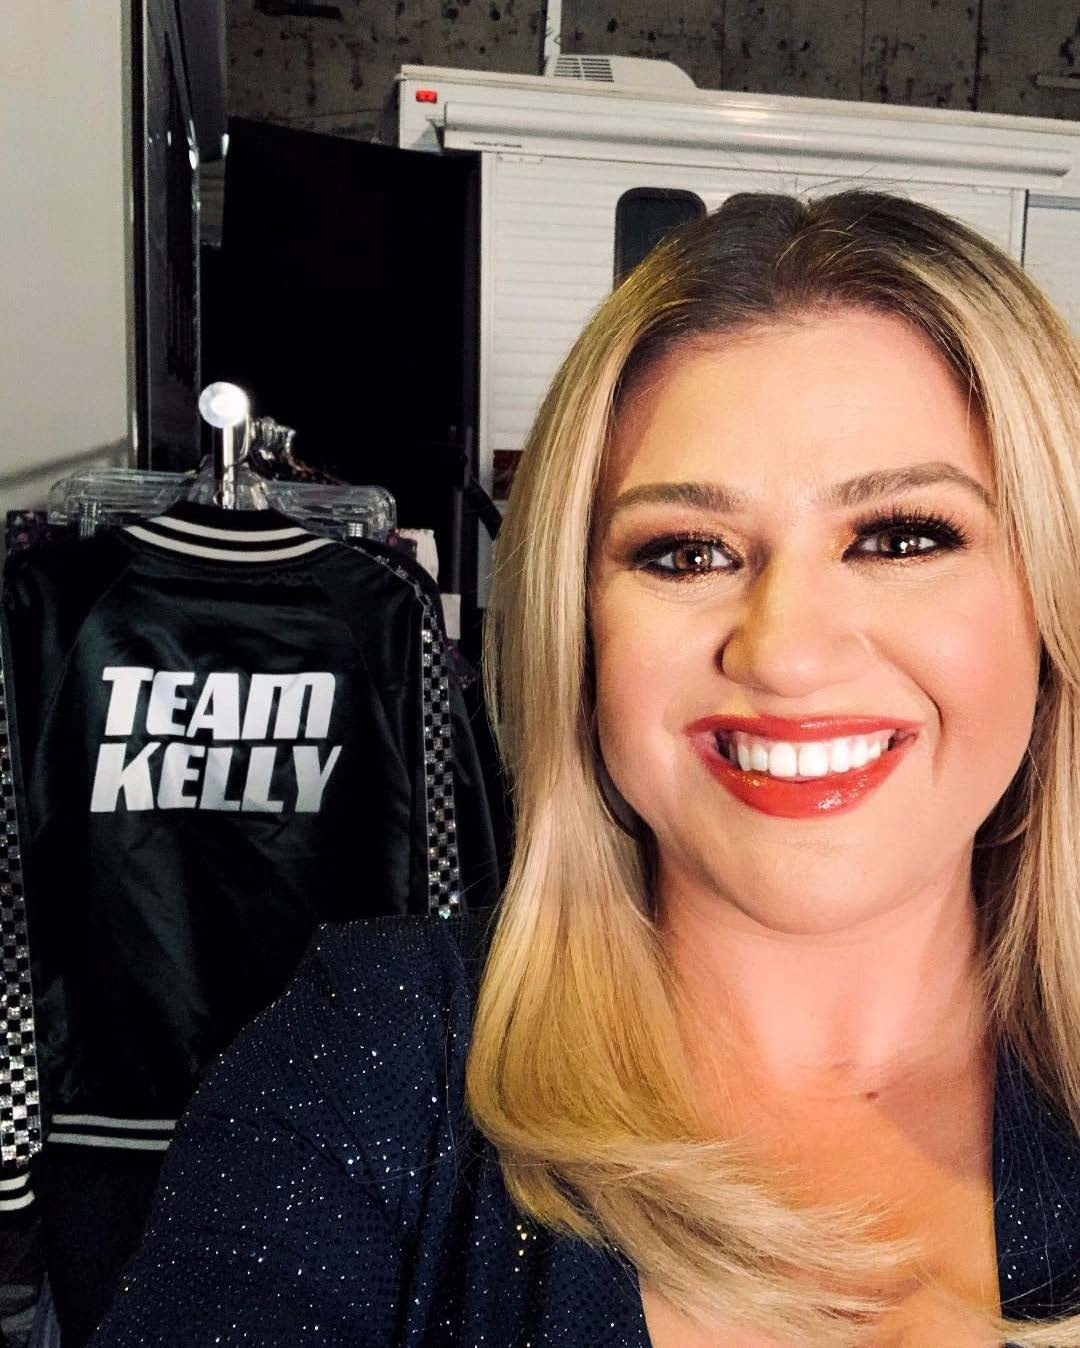 Kelly Clarkson on being body-shamed